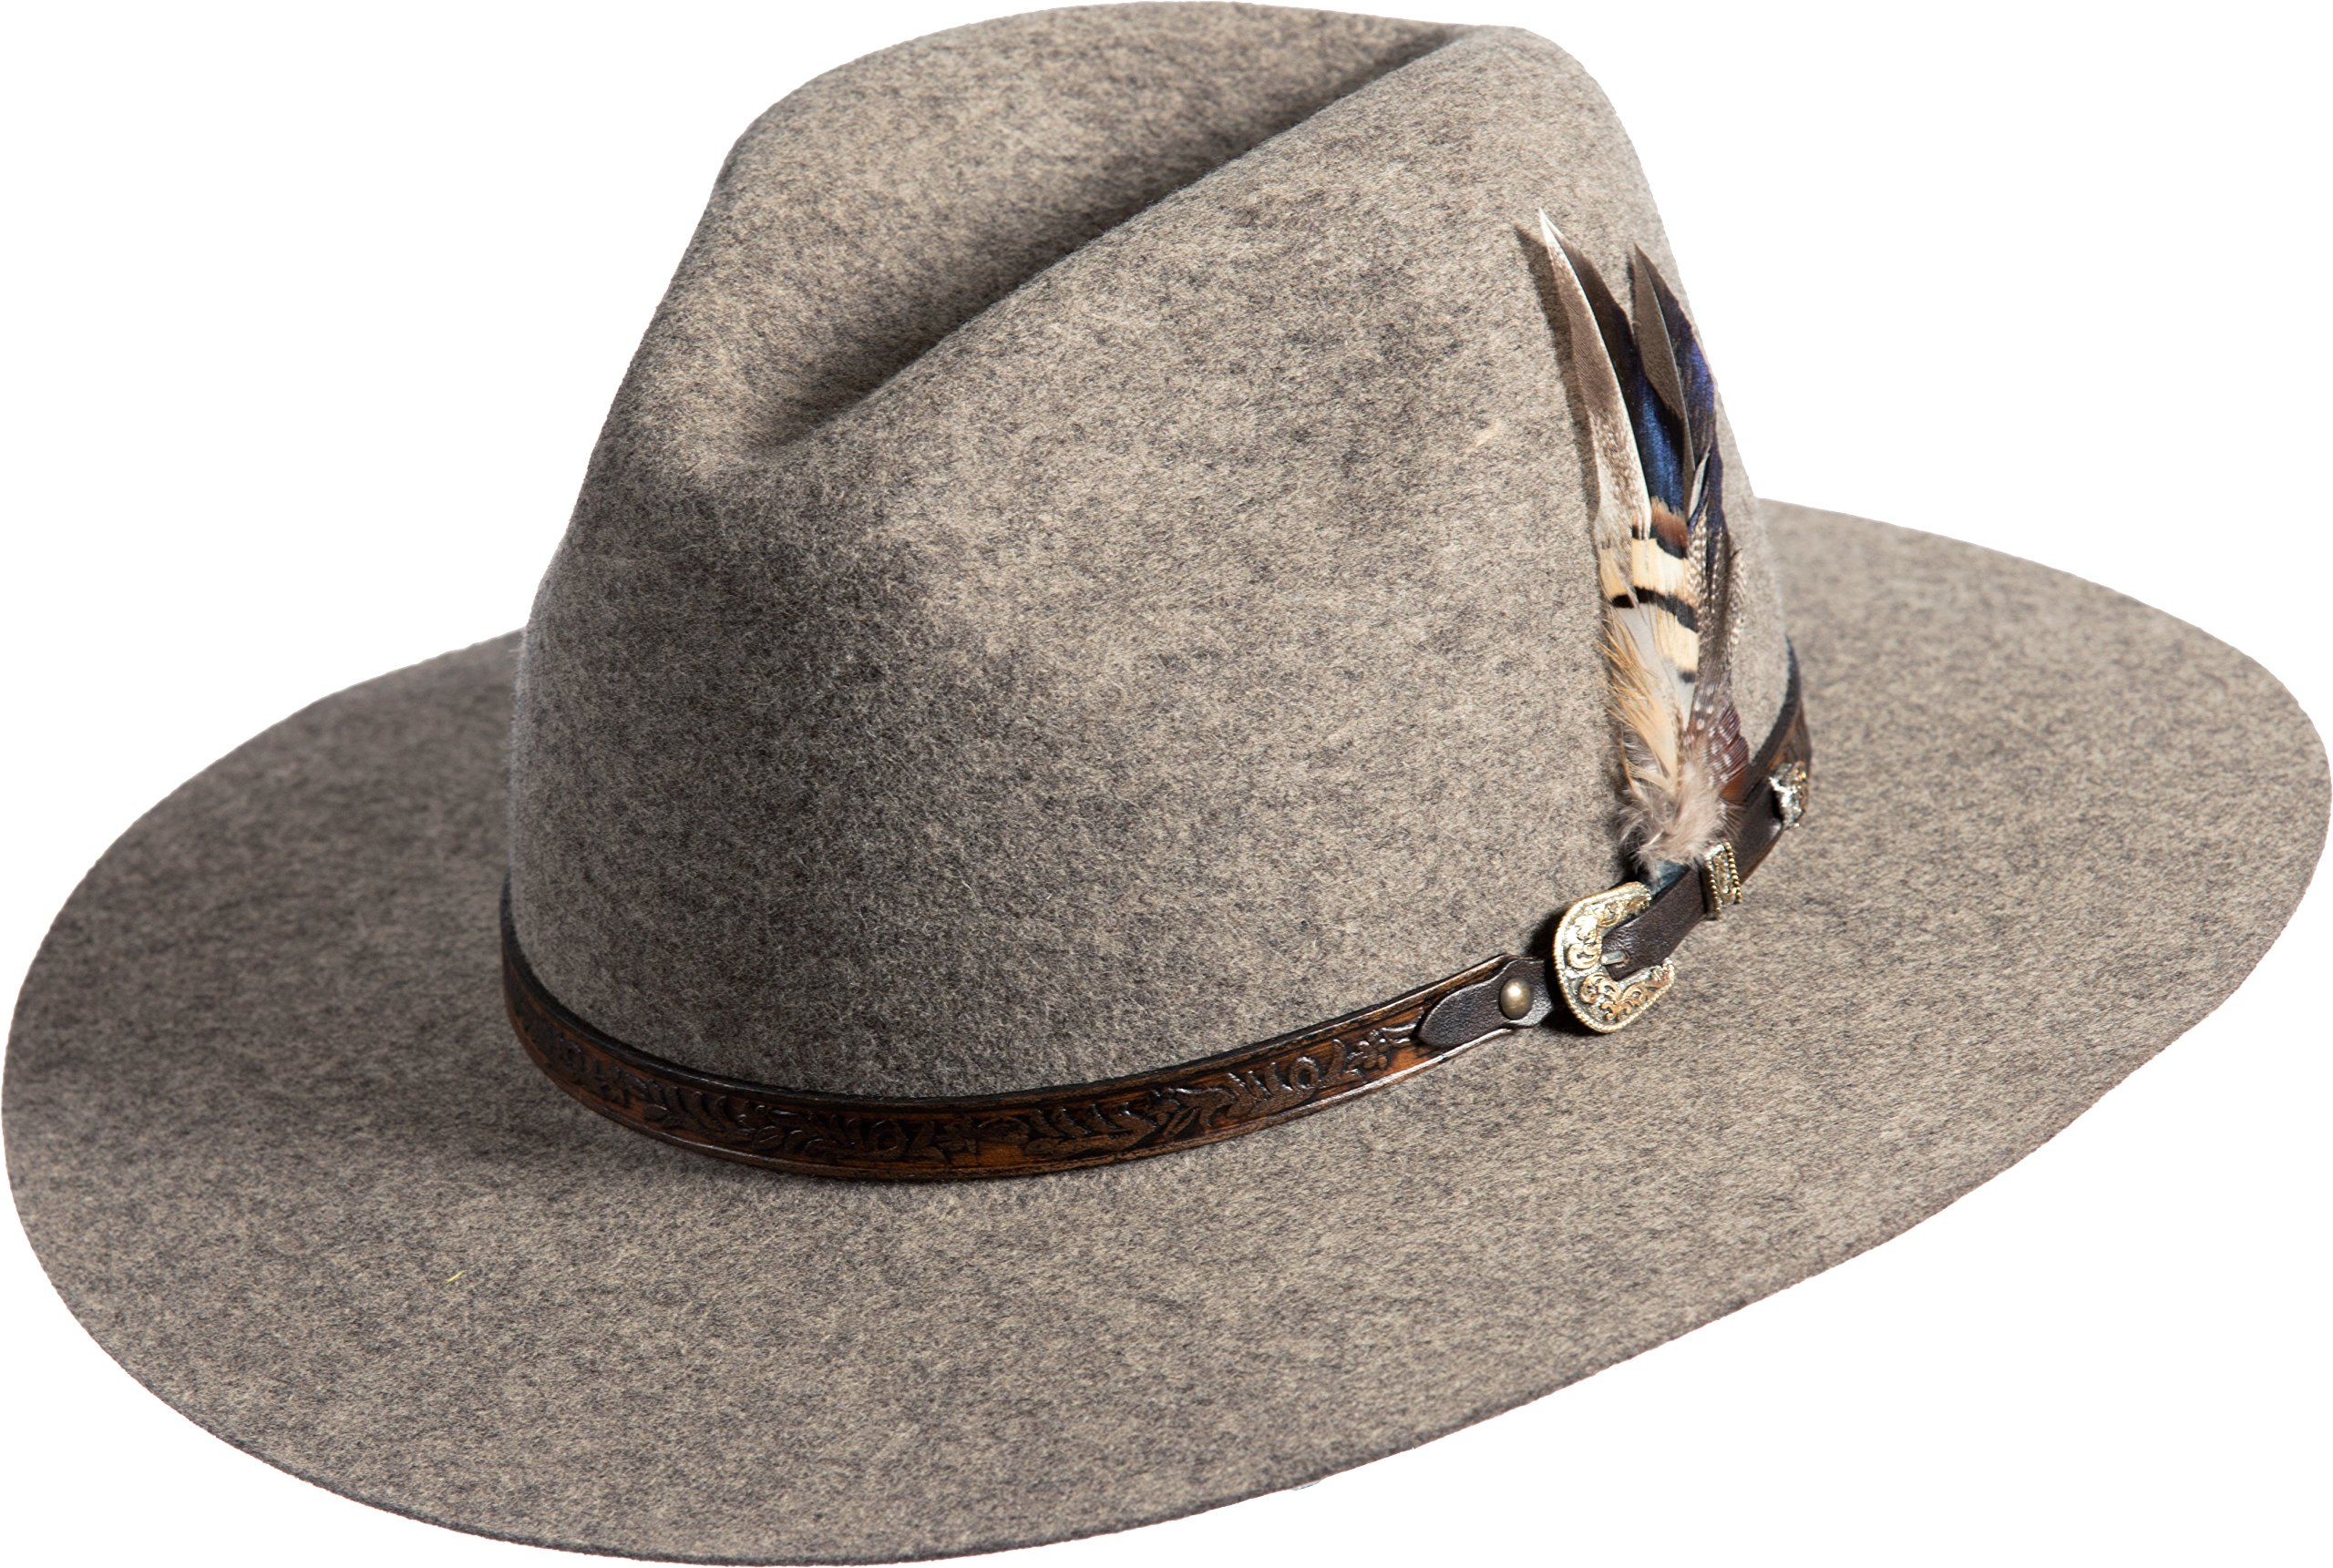 Overland Sheepskin Co. Messenger Bolivian Wool Felt Outback Hat, Brindle MIX, Size 7 3/8 by Overland Sheepskin Co (Image #1)